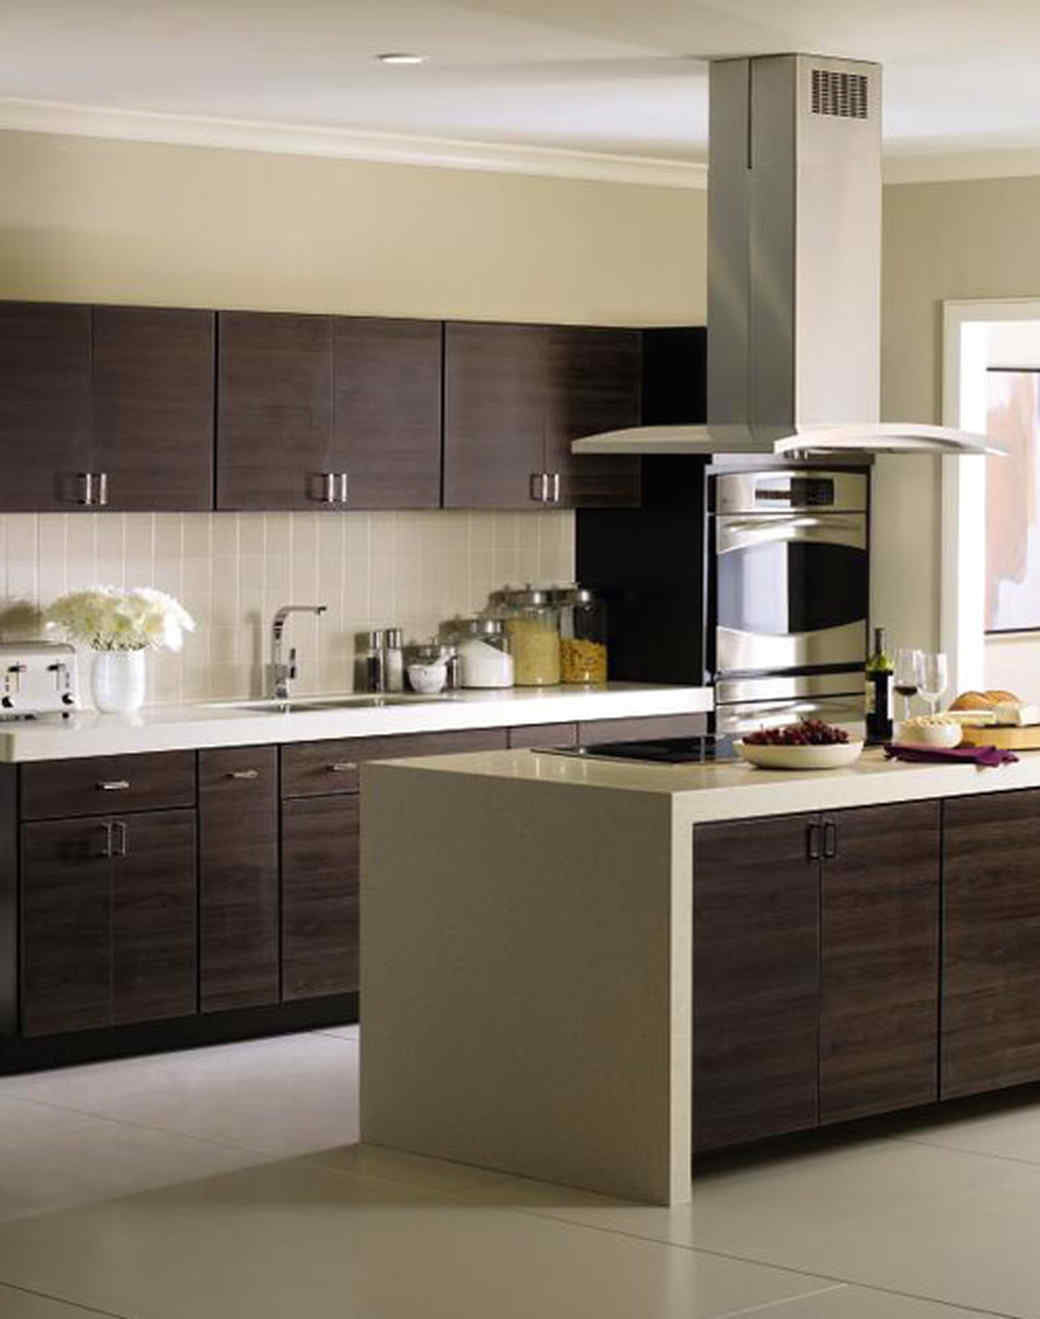 Martha Stewart Living Kitchen Designs From The Home Depot | Martha Stewart Amazing Design